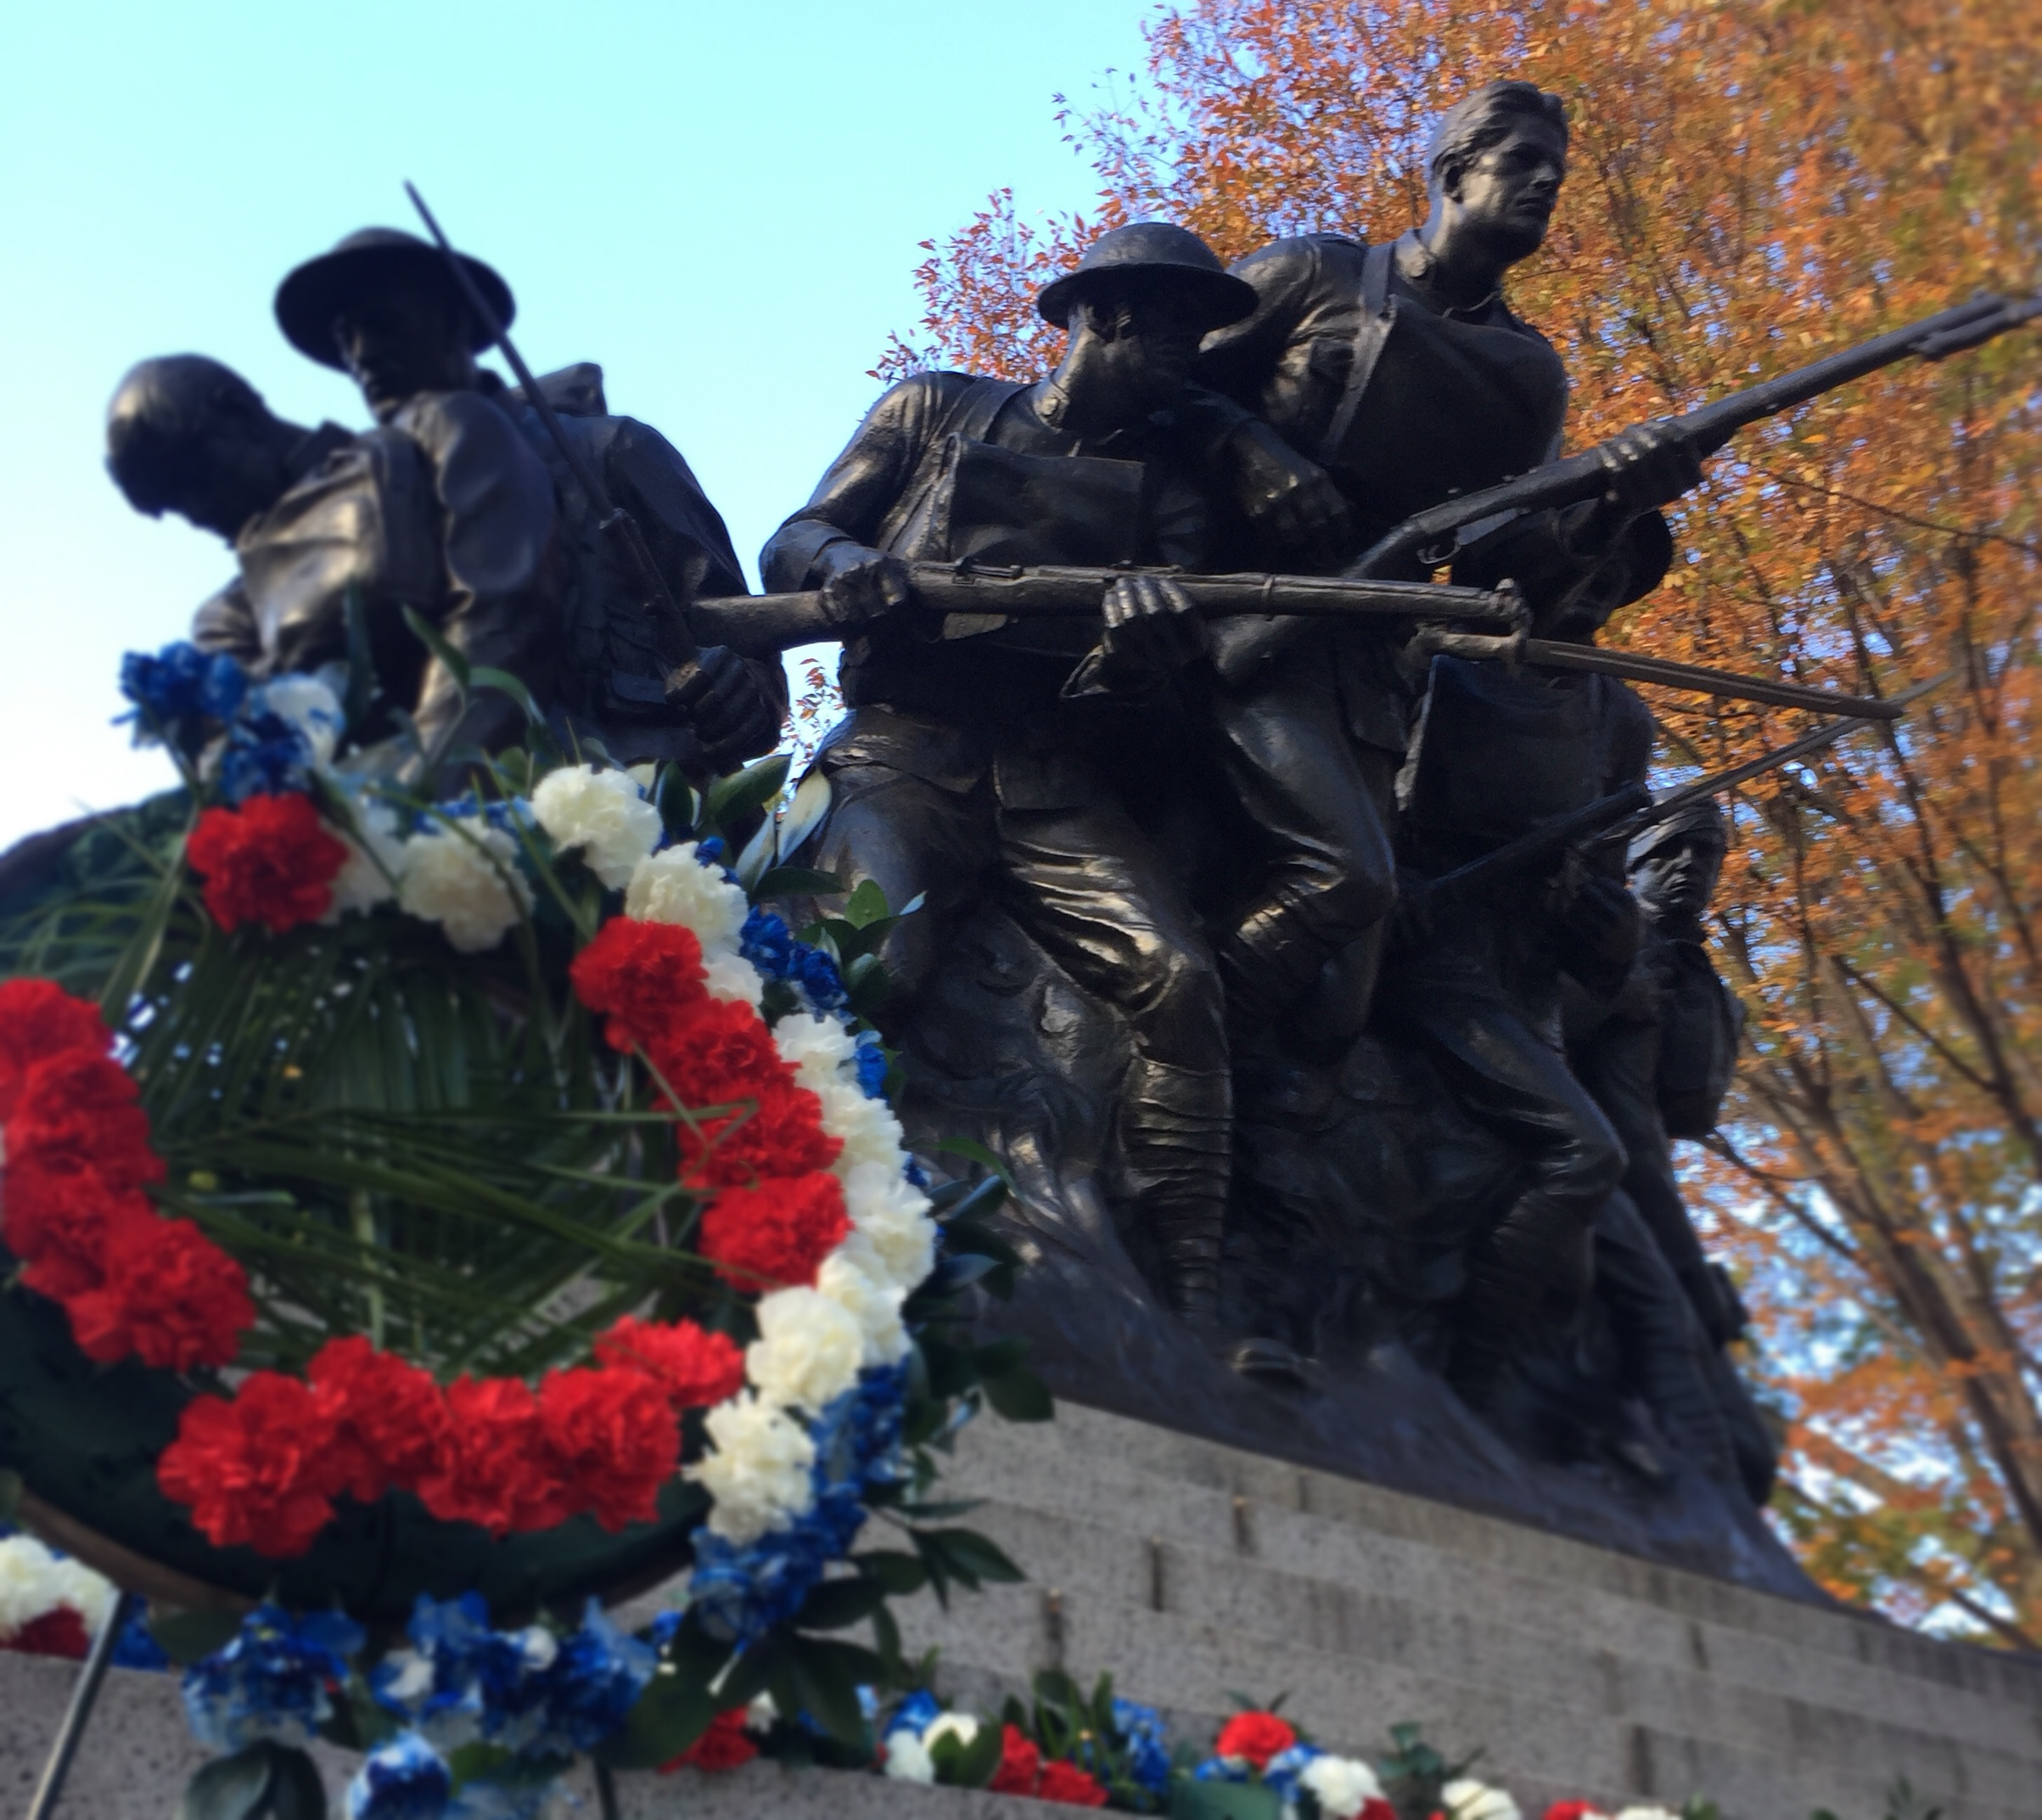 World War I memorial at East 67th and 5th Ave, Manhattan - 11/11/2016 - Photo by John